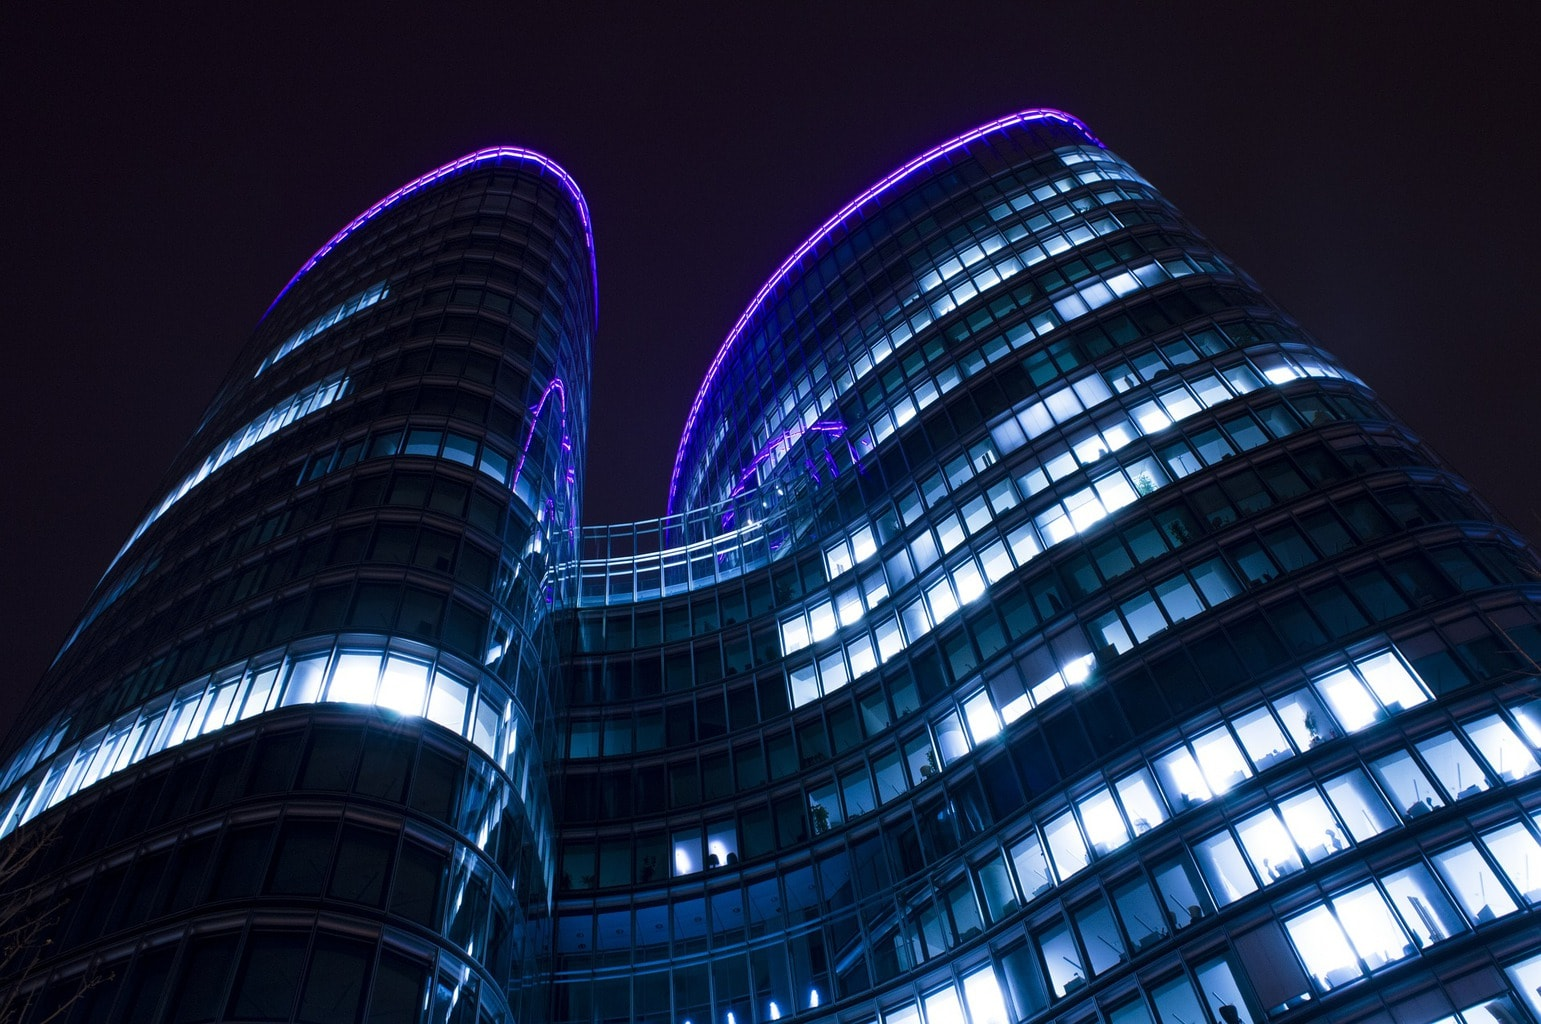 towers-547113_1920